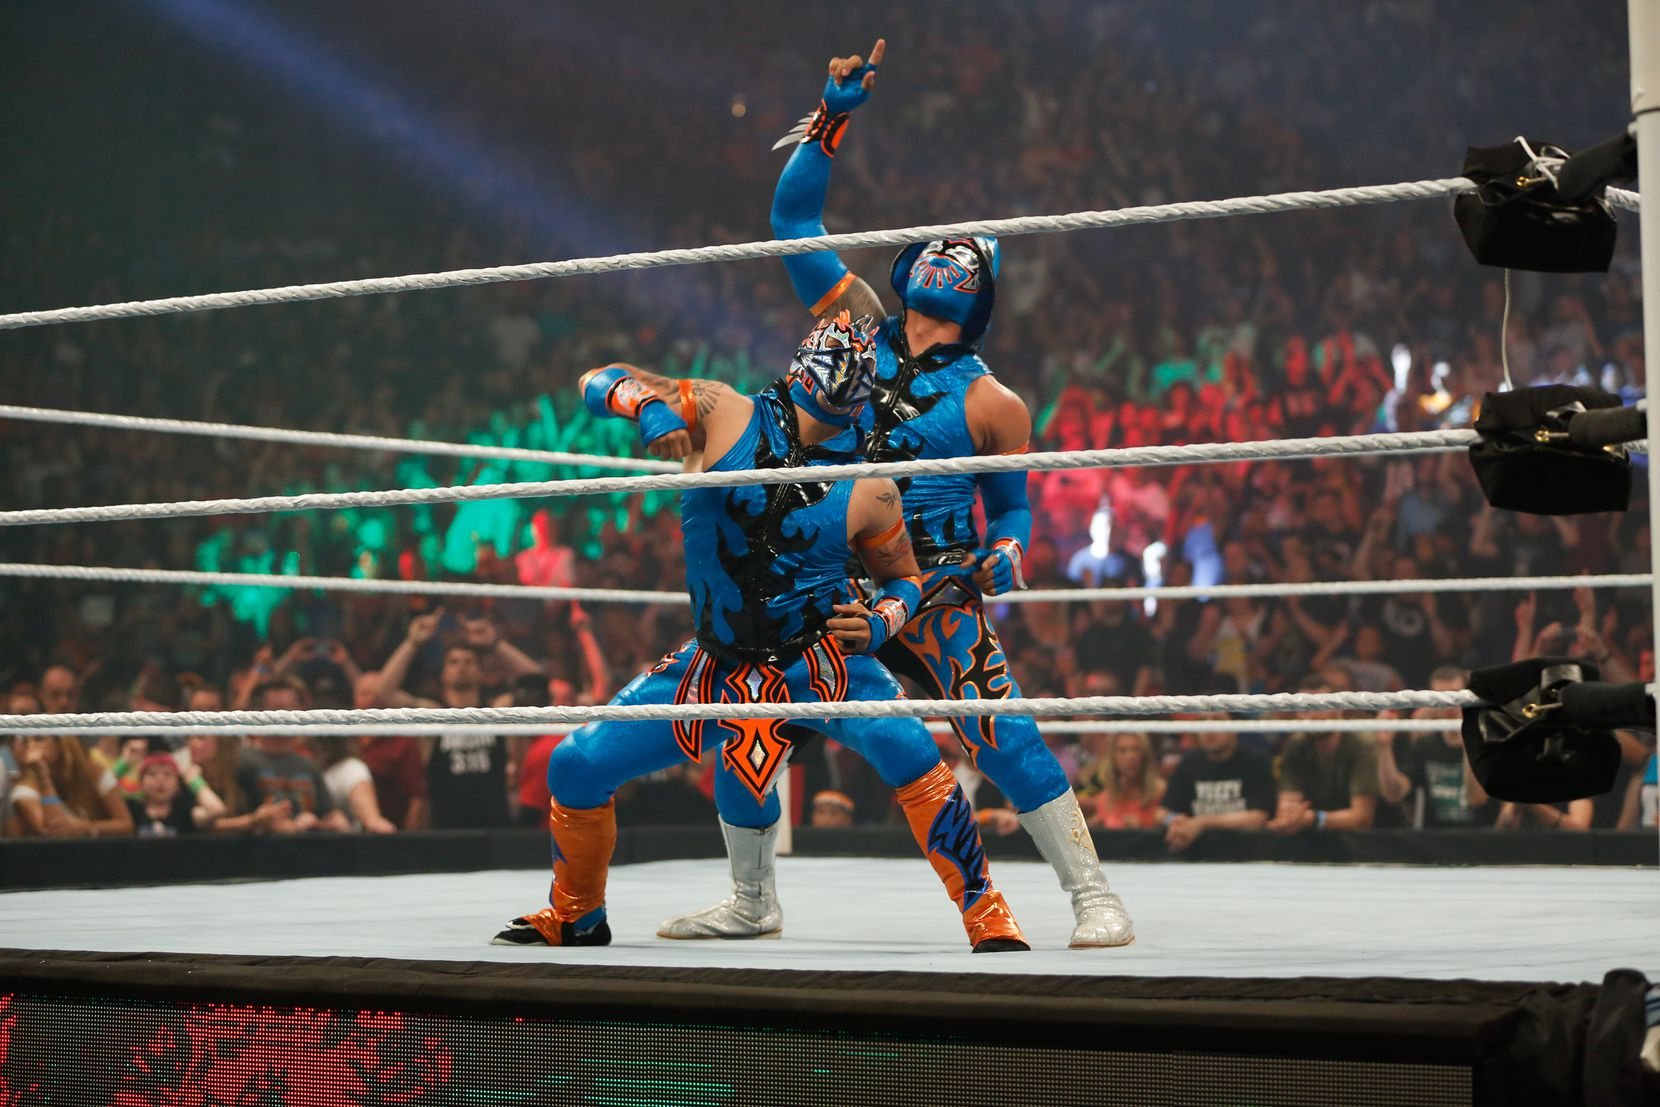 Los Lucha Dragons